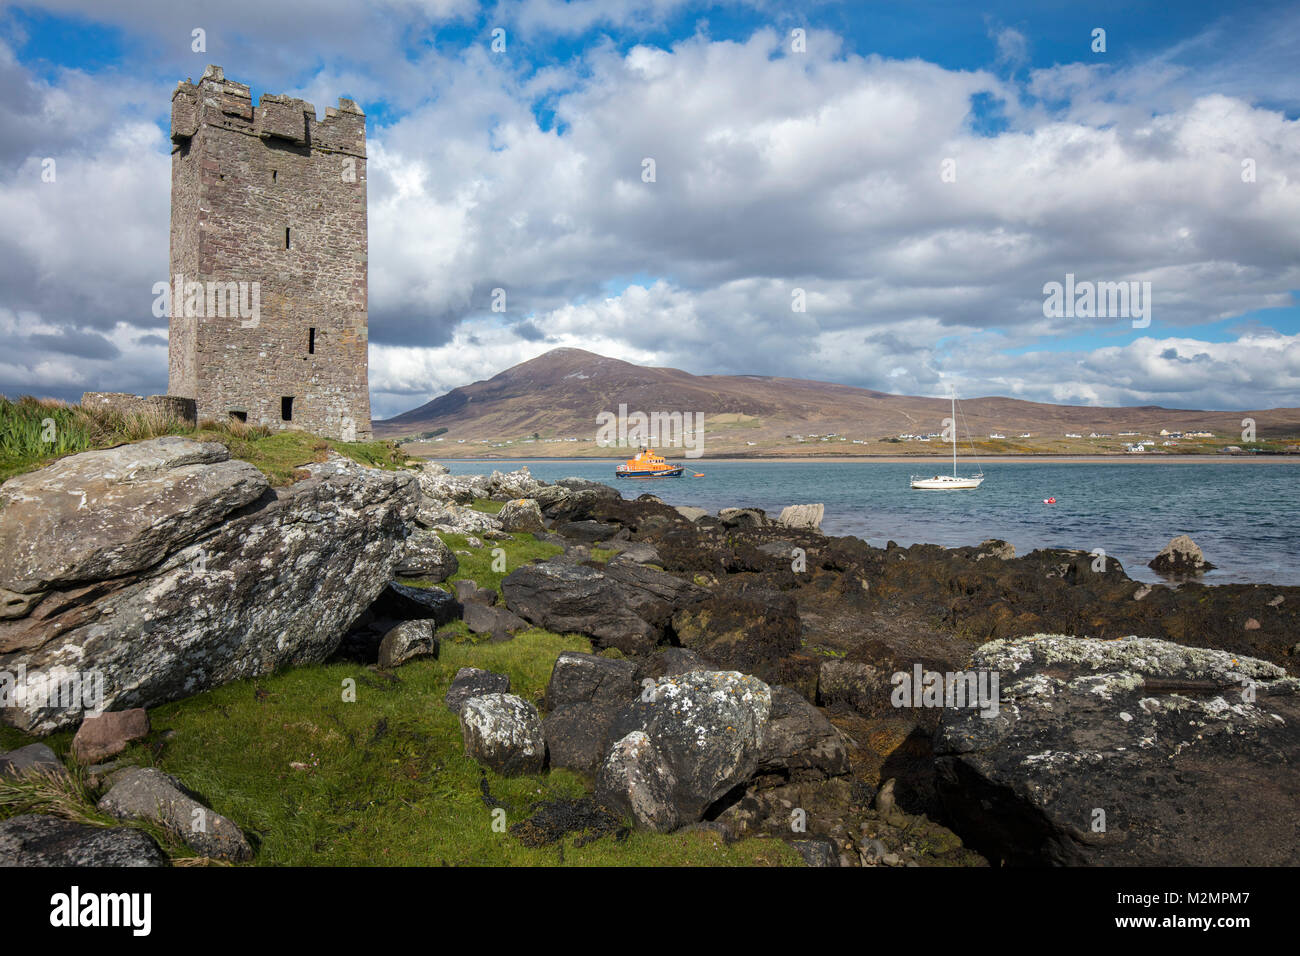 Granuaille's Kildavnet Castle on the shore of Achill Sound, Achill Island, County Mayo, Ireland. - Stock Image